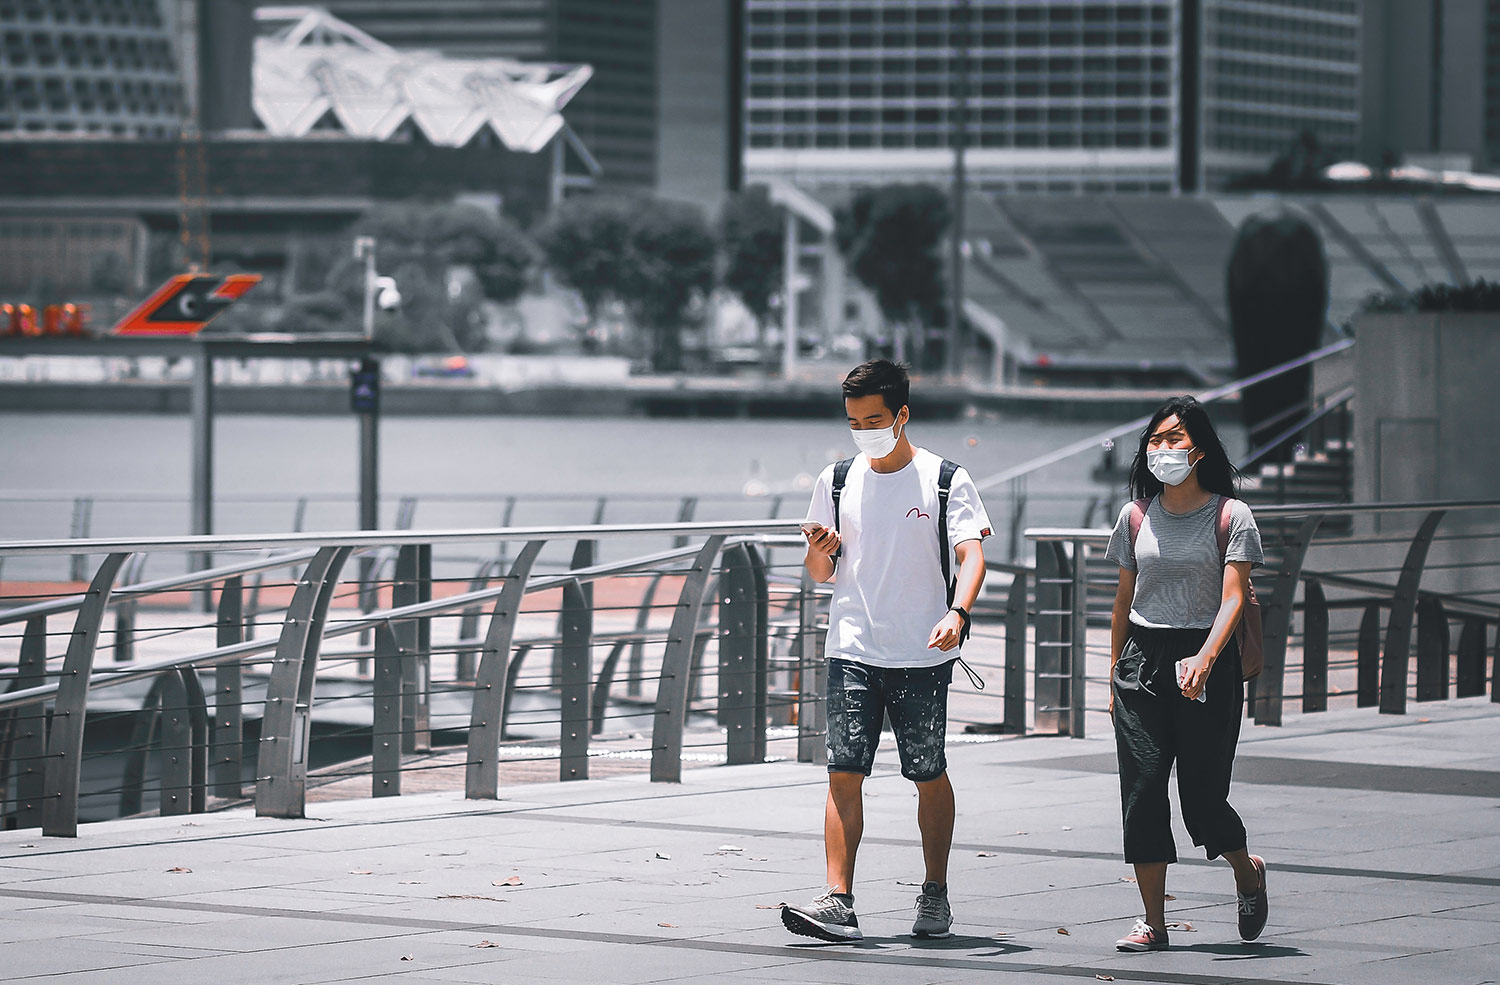 Marina Bay, Singapore. As of 9 August 2020, there are a total of 55,104 confirmed cases, with 48,915 recoveries and 27 deaths. (MOH Singapore)